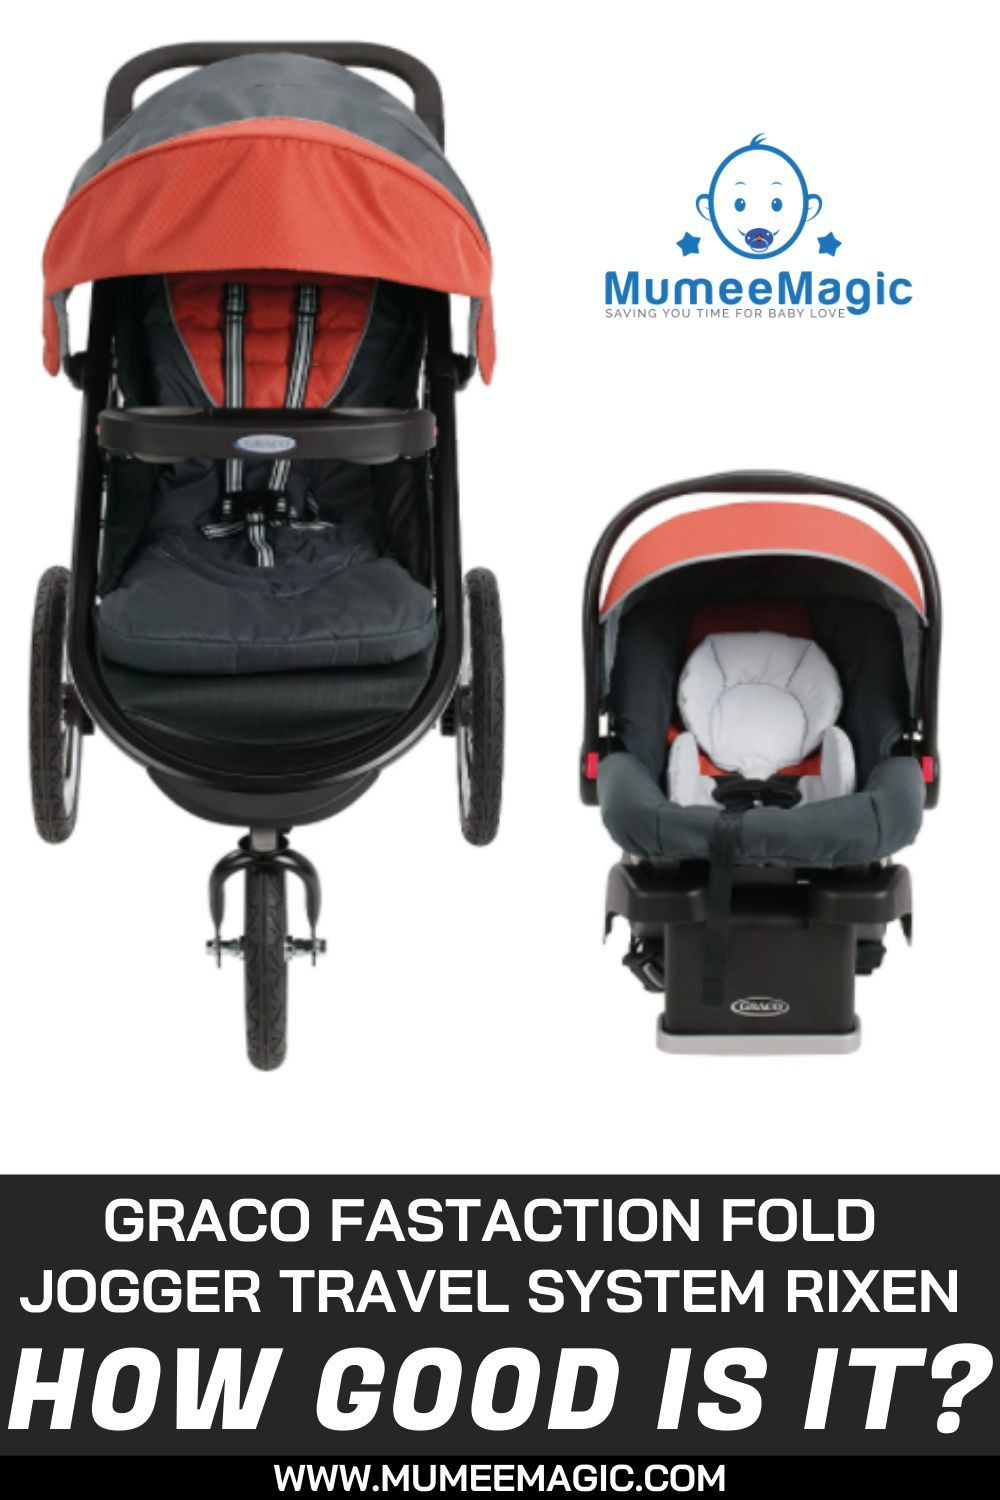 10+ Graco stroller jogger travel system ideas in 2021